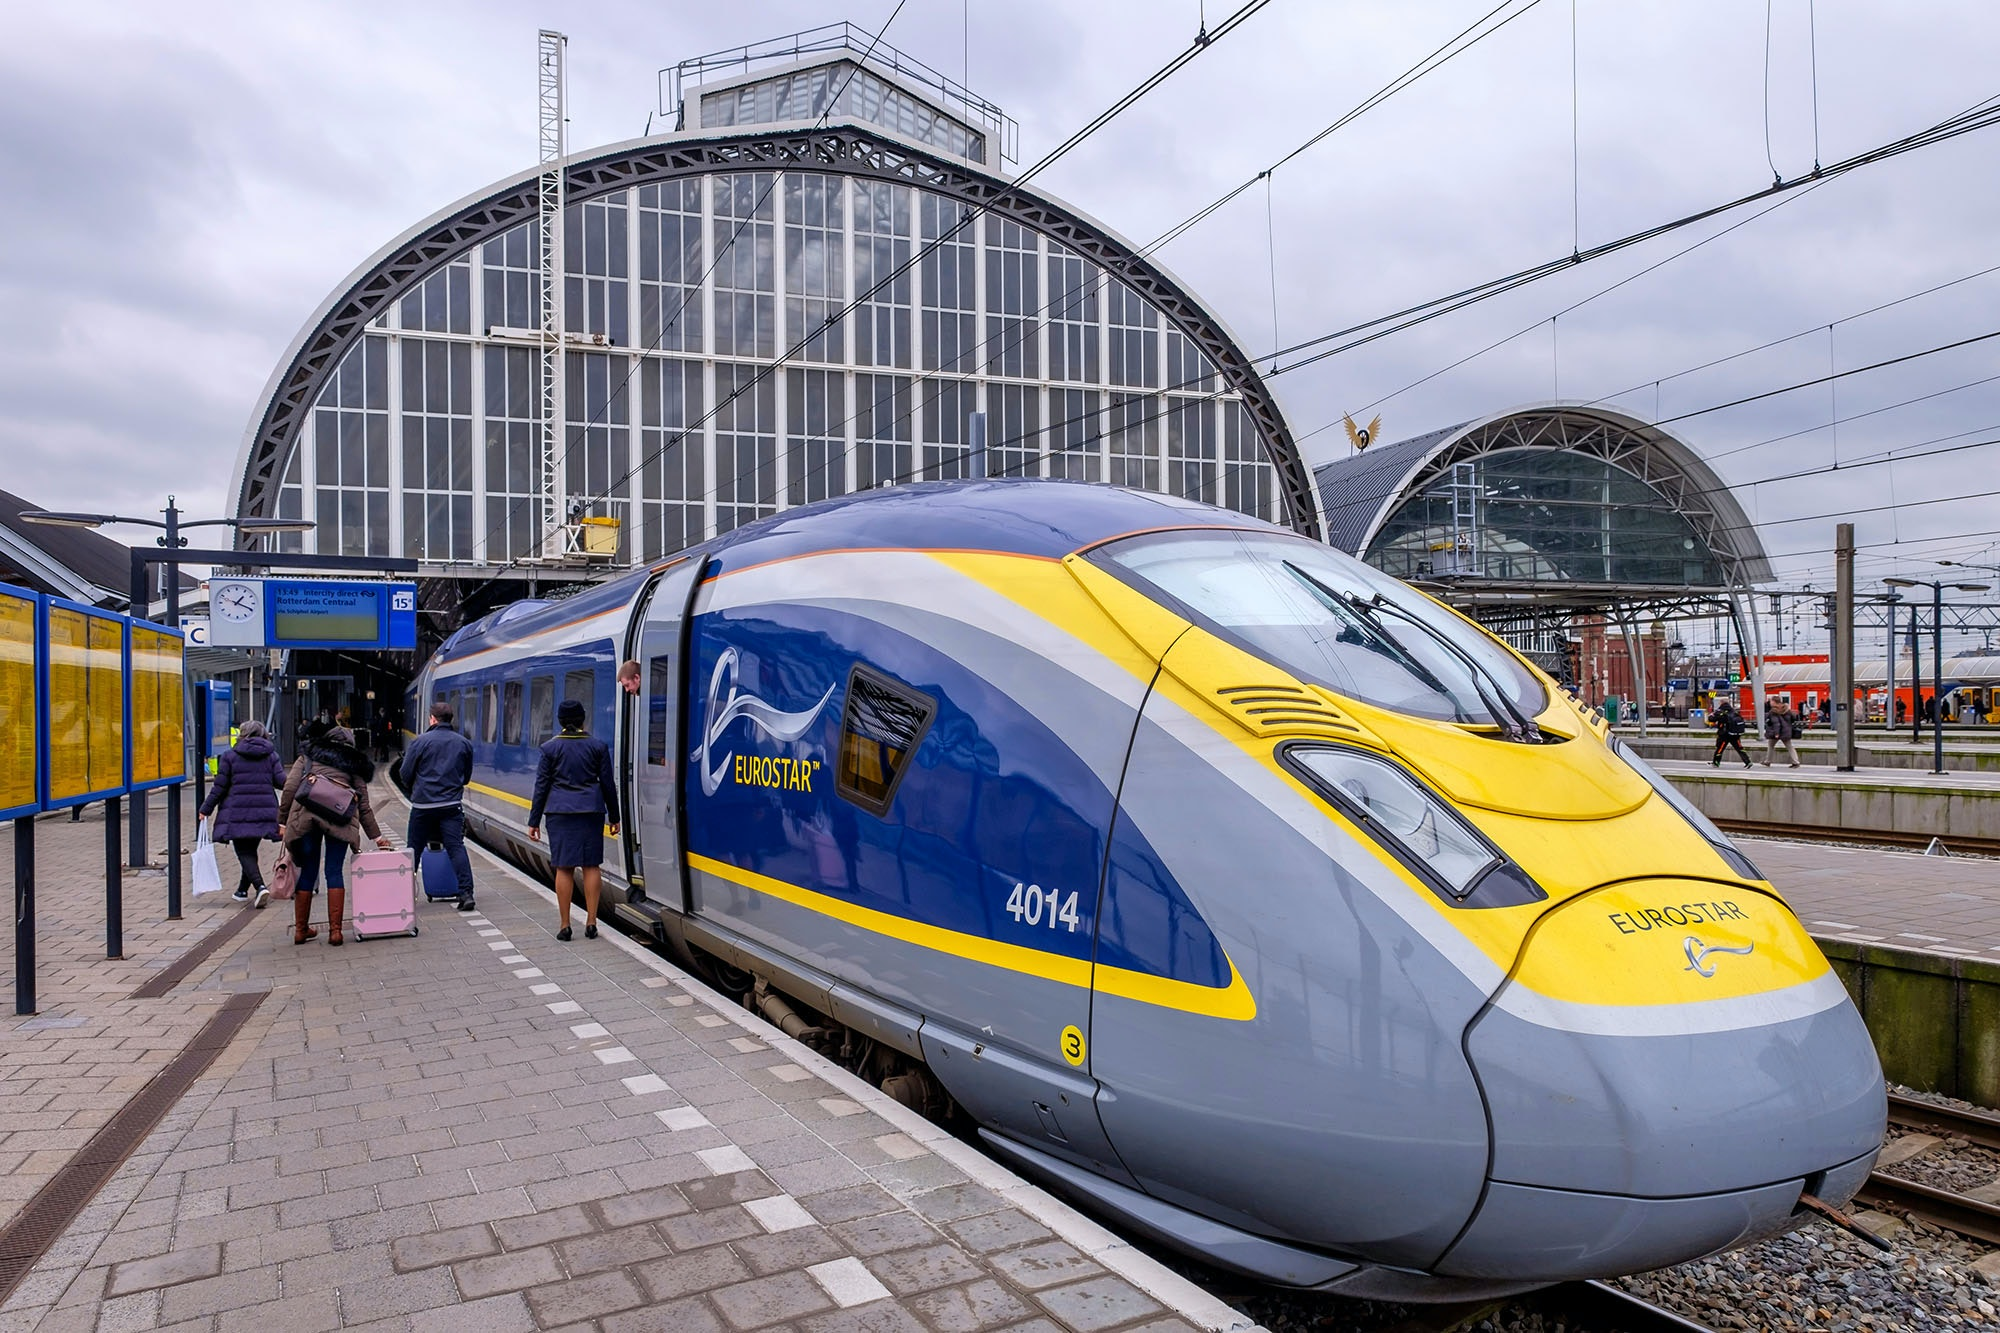 Save money on the newly opened London to Amsterdam route on the Eurostar train.